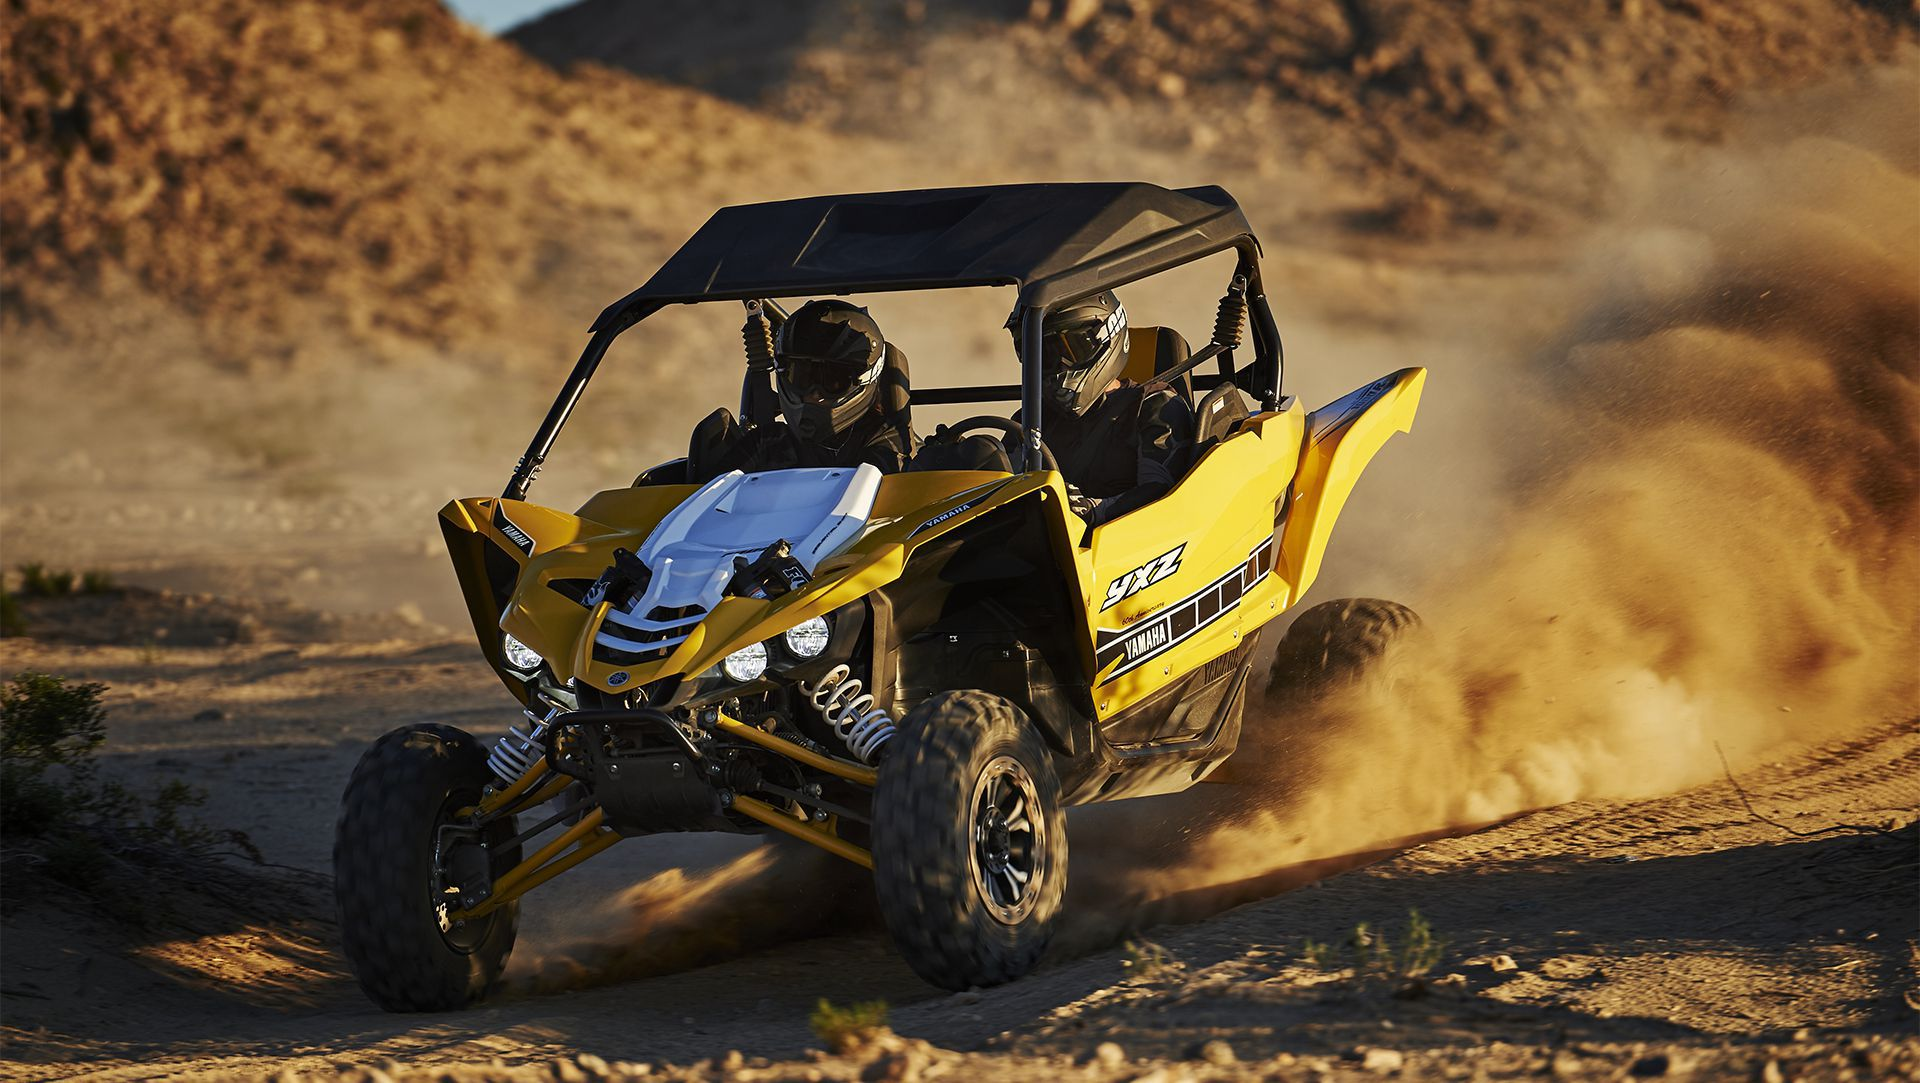 Yamaha new side-by-side vehicle (SxS) YXZ1000R | Auto Moto